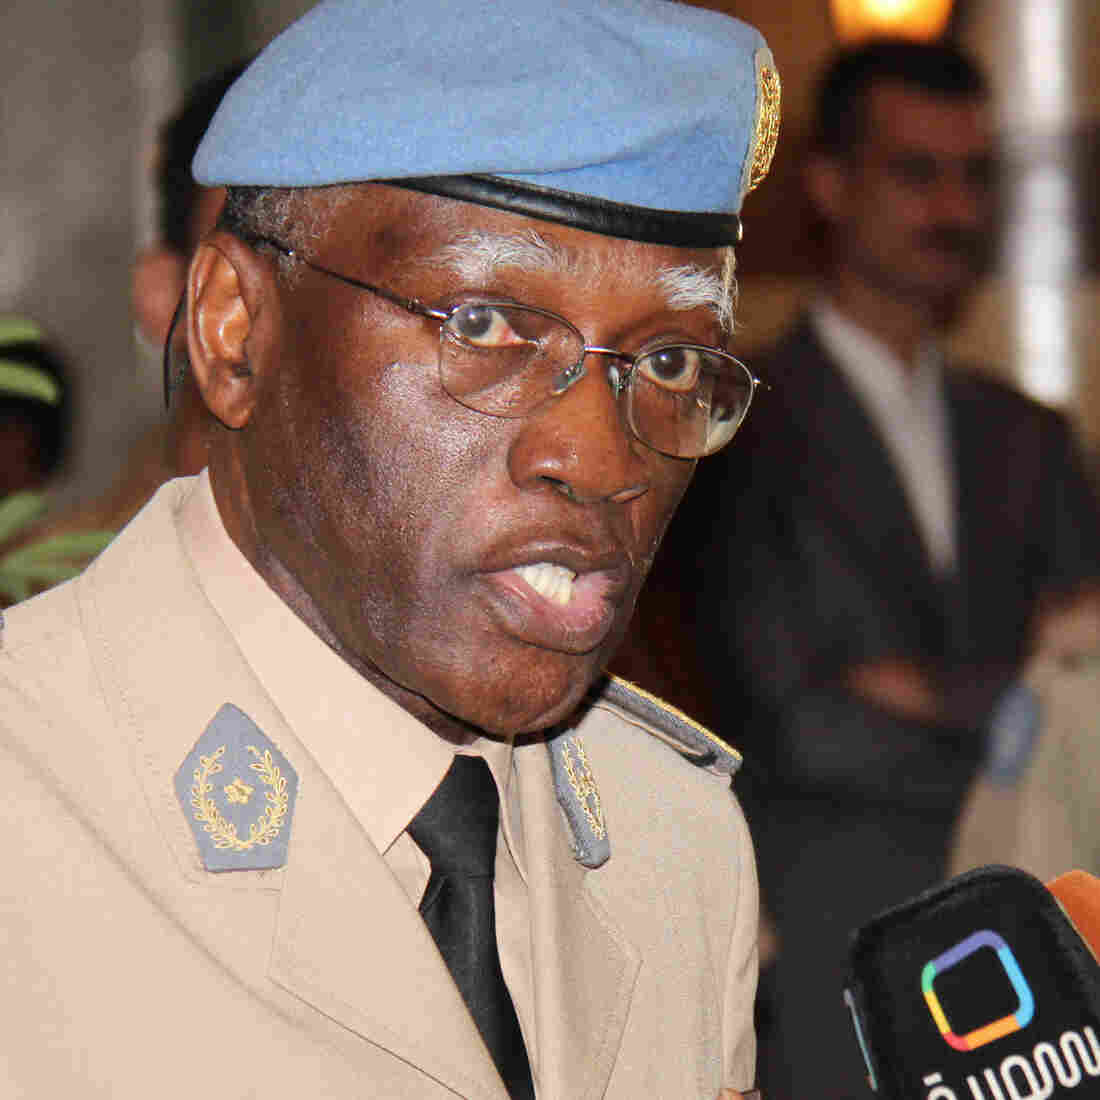 Babacar Gaye has been forced to resign from his post leading the U.N.'s peacekeeping mission in the Central African Republic. He's seen here in 2012, when he led the U.N.'s force in Syria.